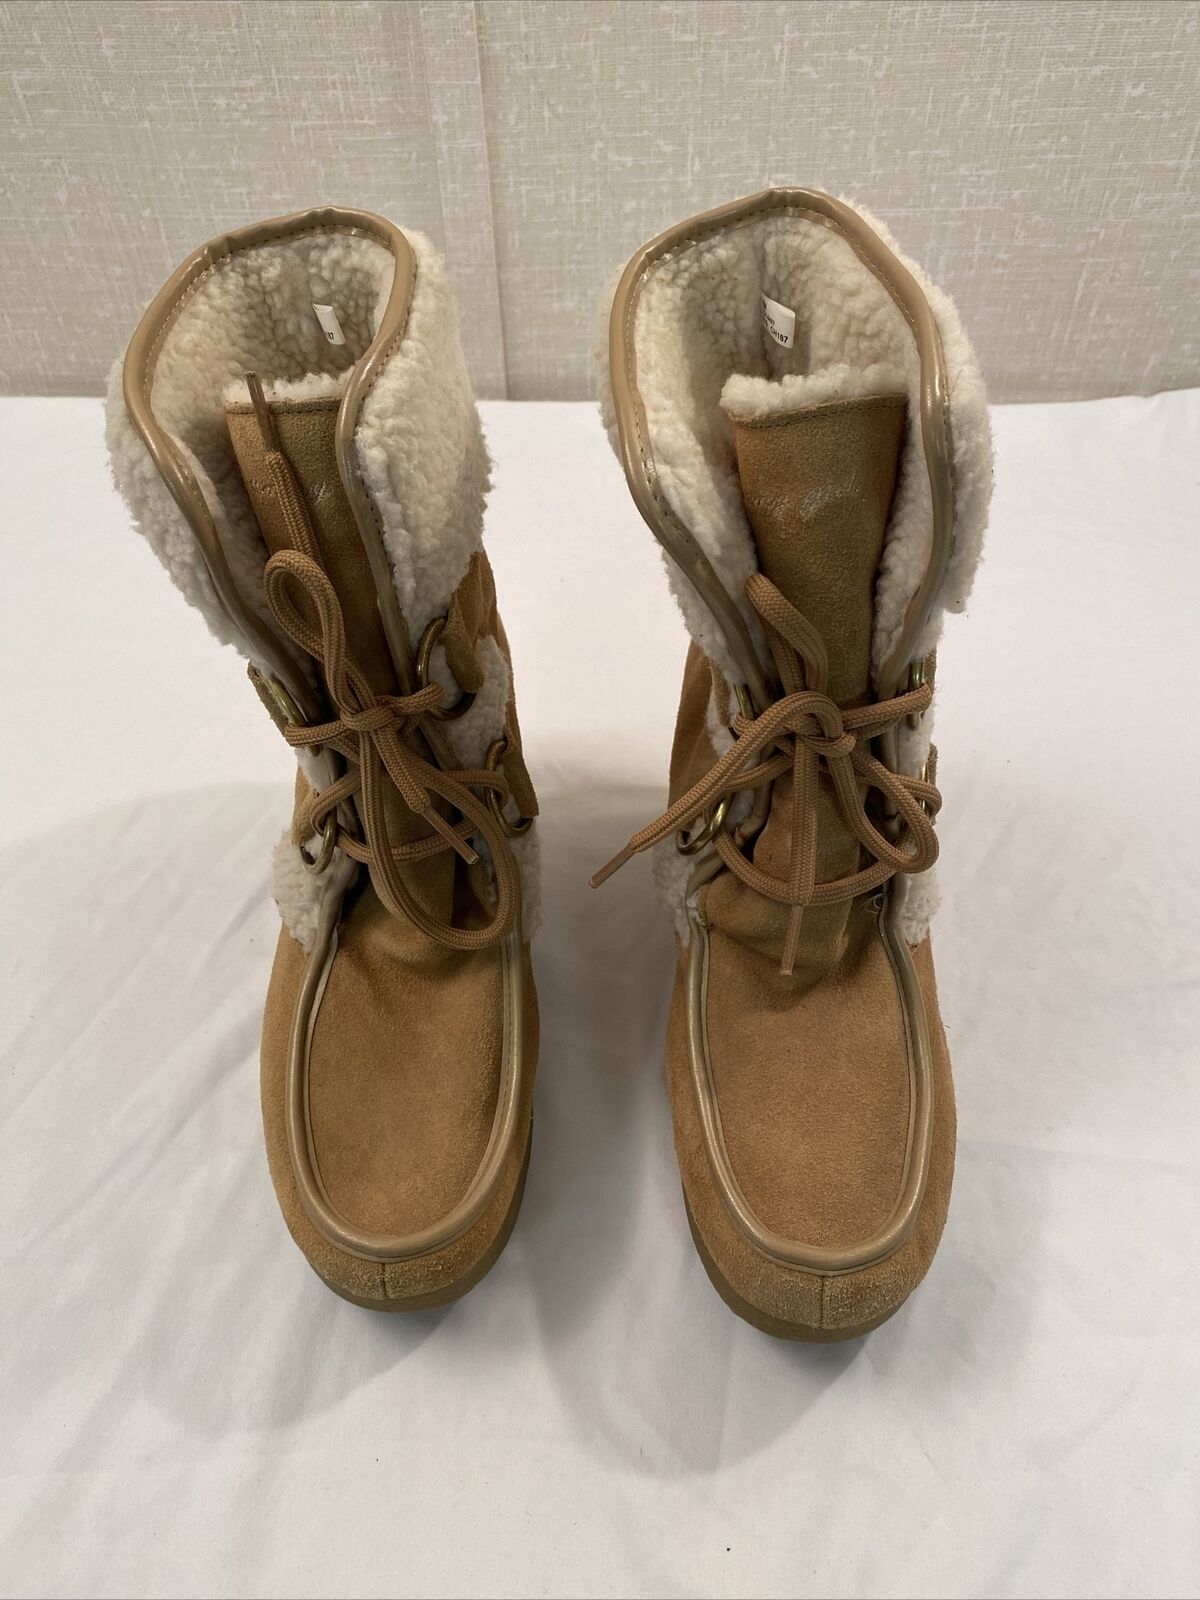 tommy hilfiger Brown boots women 8M - image 2